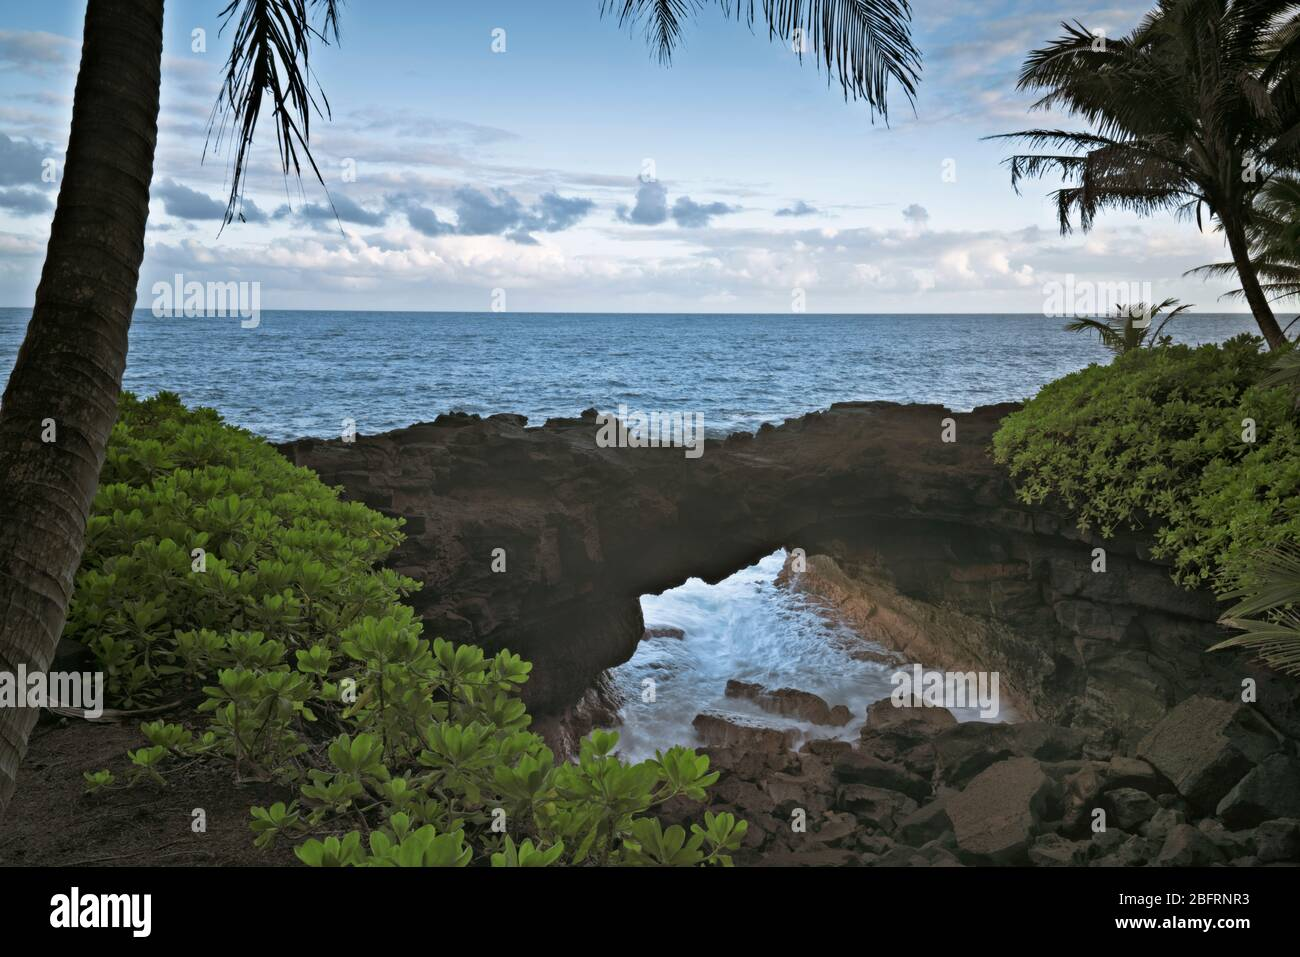 The Pacific Ocean rushes into this natural lava arch along the Puna coastline on the Big Island of Hawaii. Stock Photo